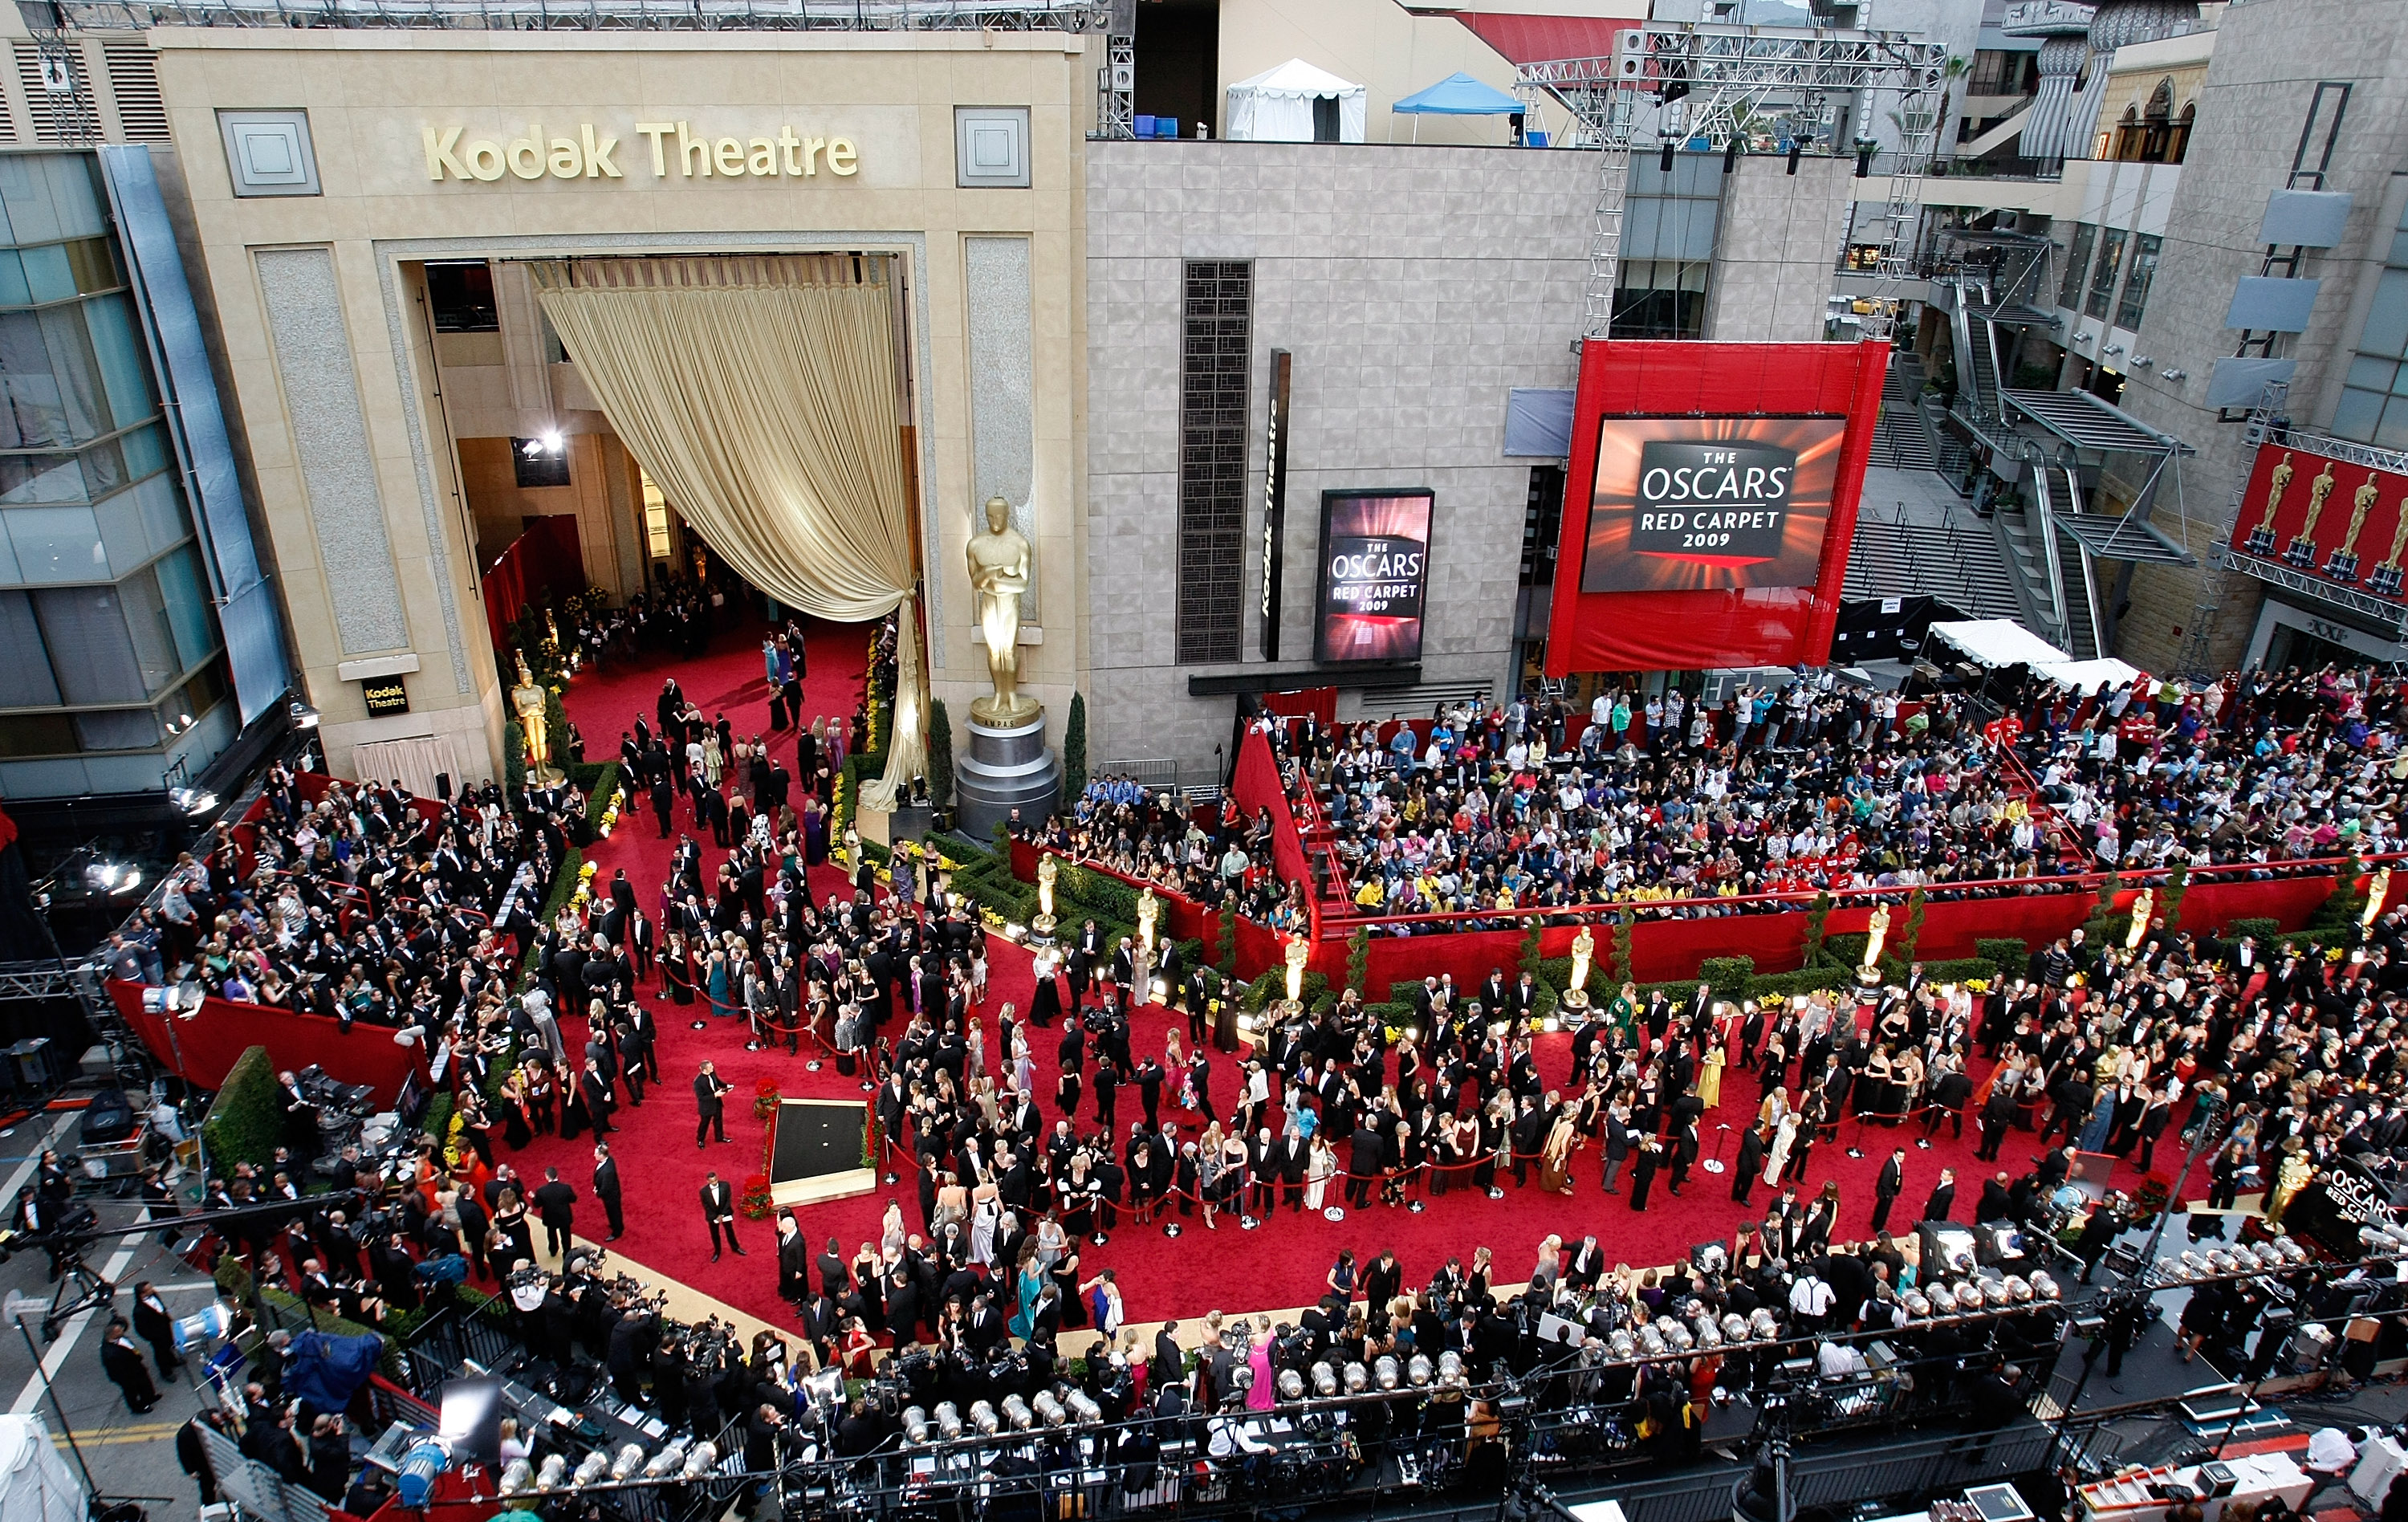 The total cost of the Oscars ceremony is a mind-boggling $44 million